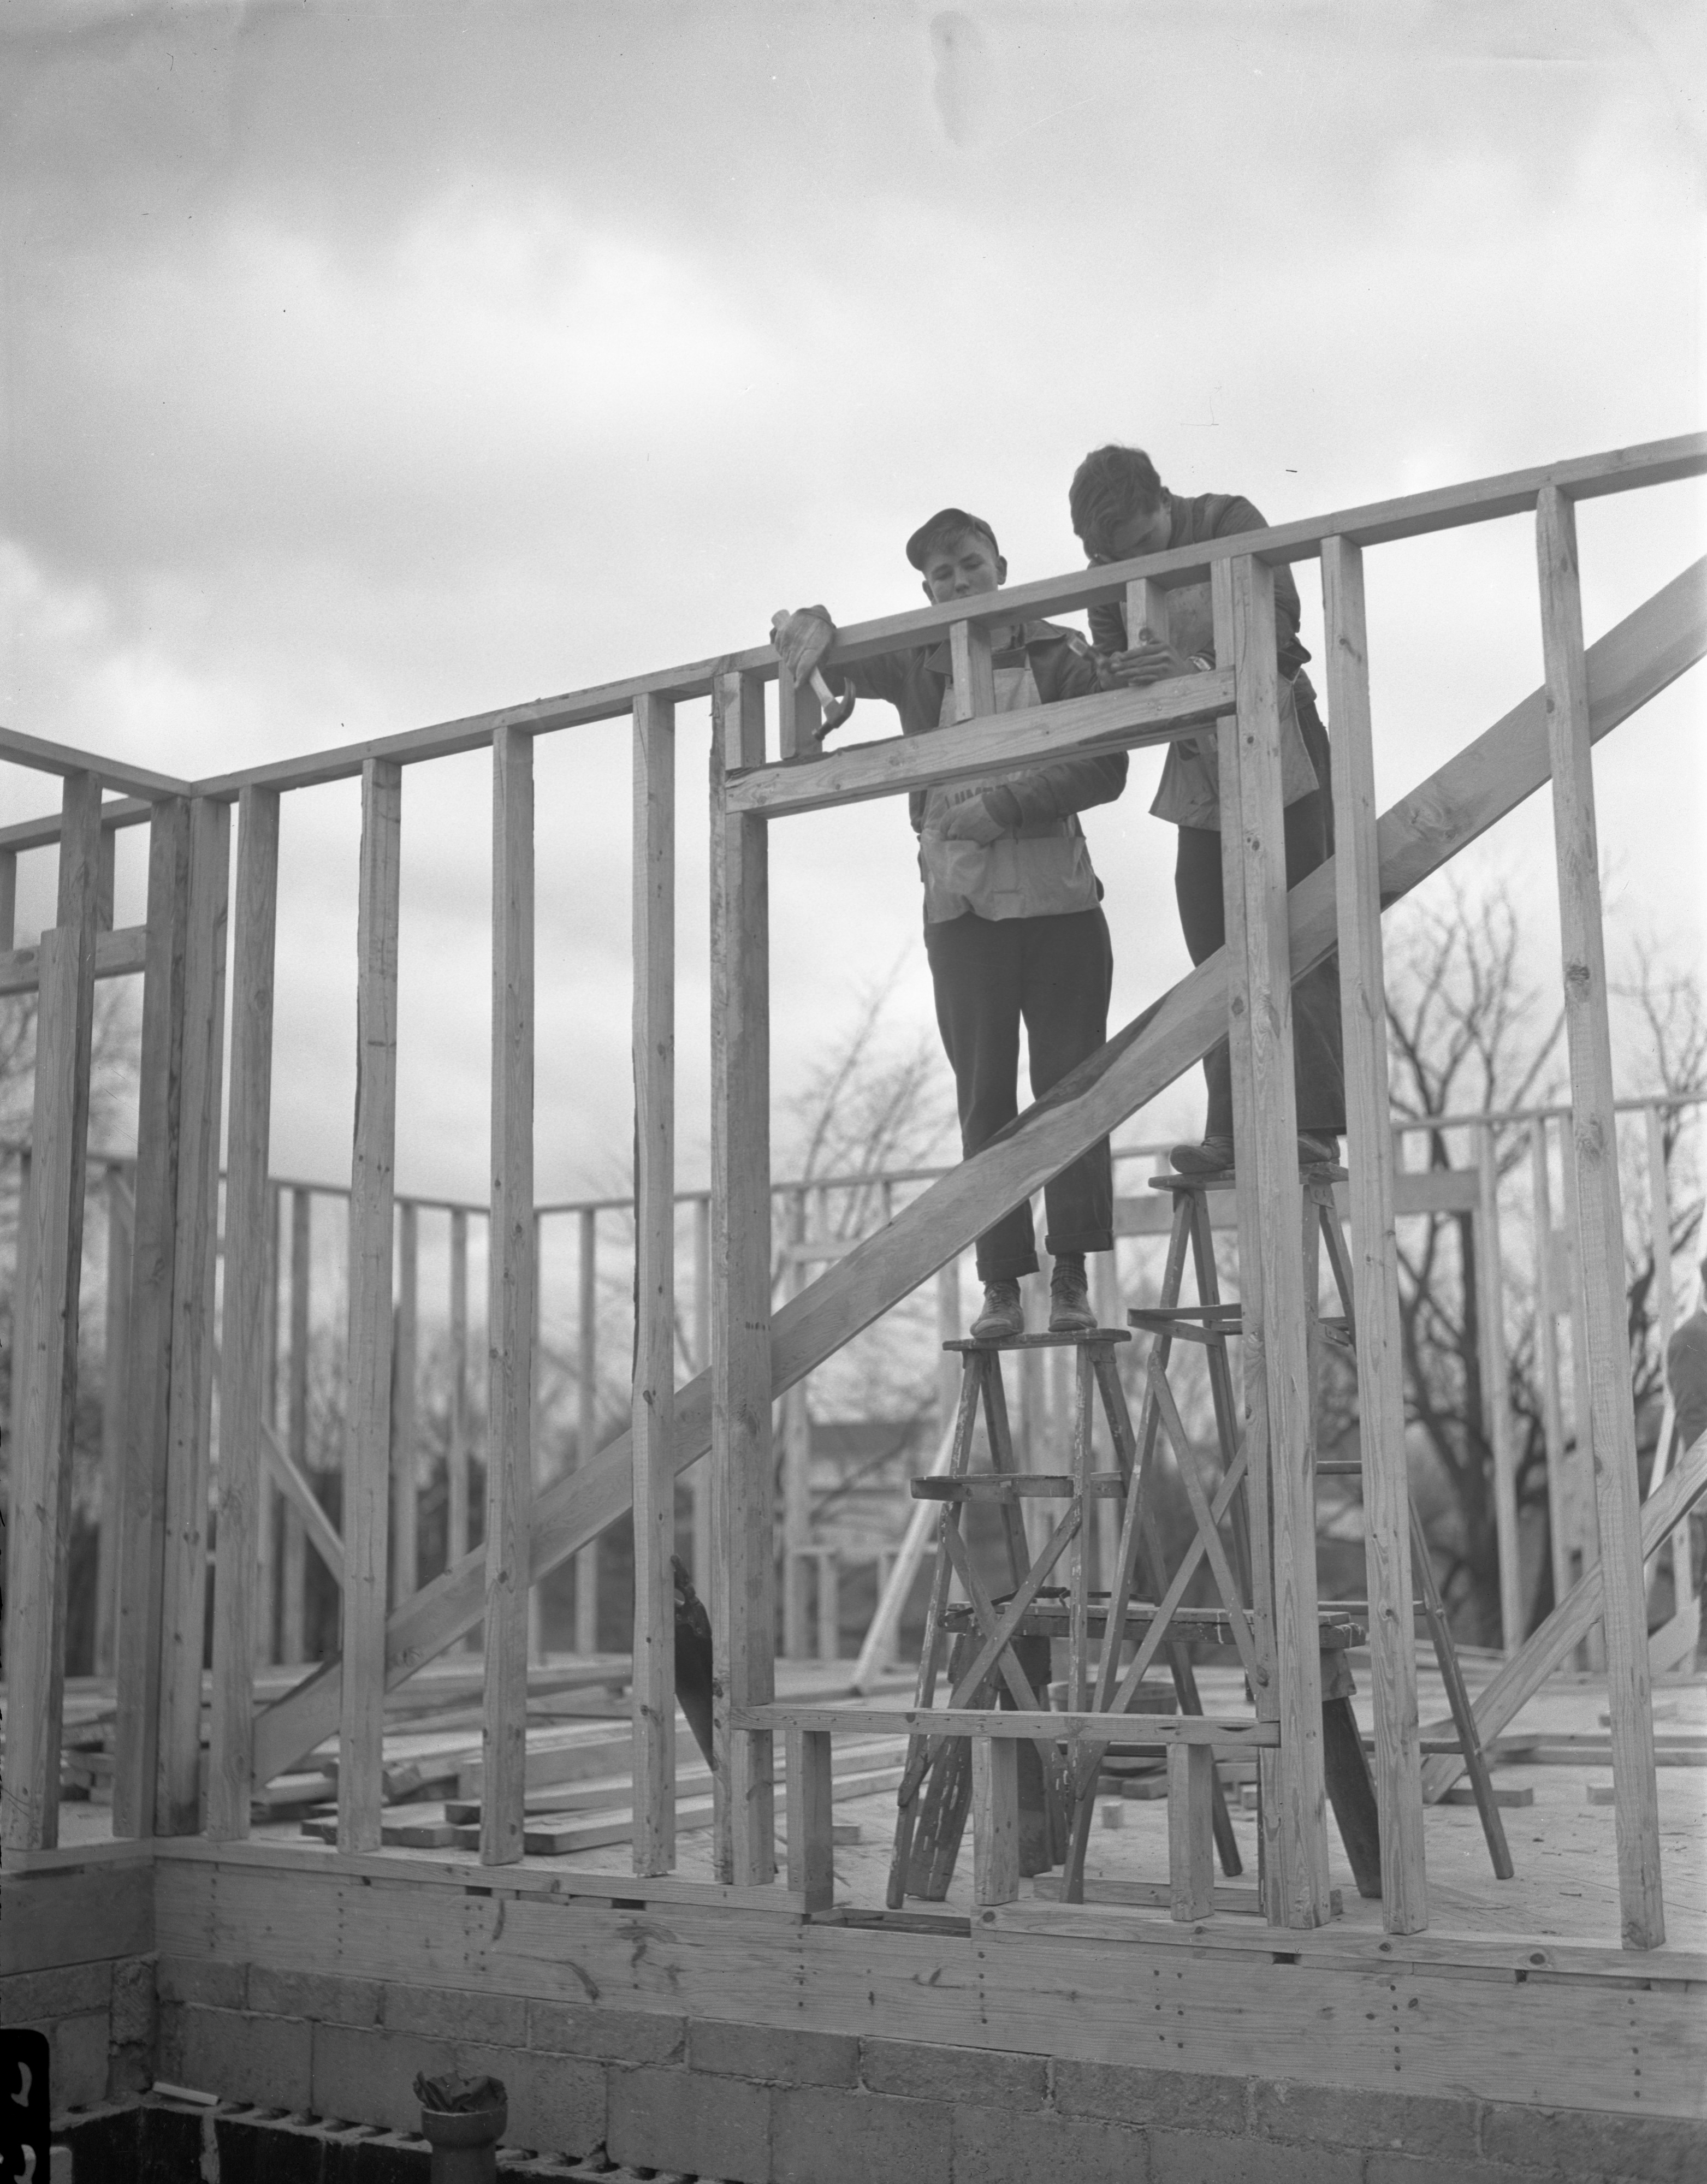 803 Mt. Pleasant Avenue - Home Being Built By Ann Arbor High School Students, November 1945 image